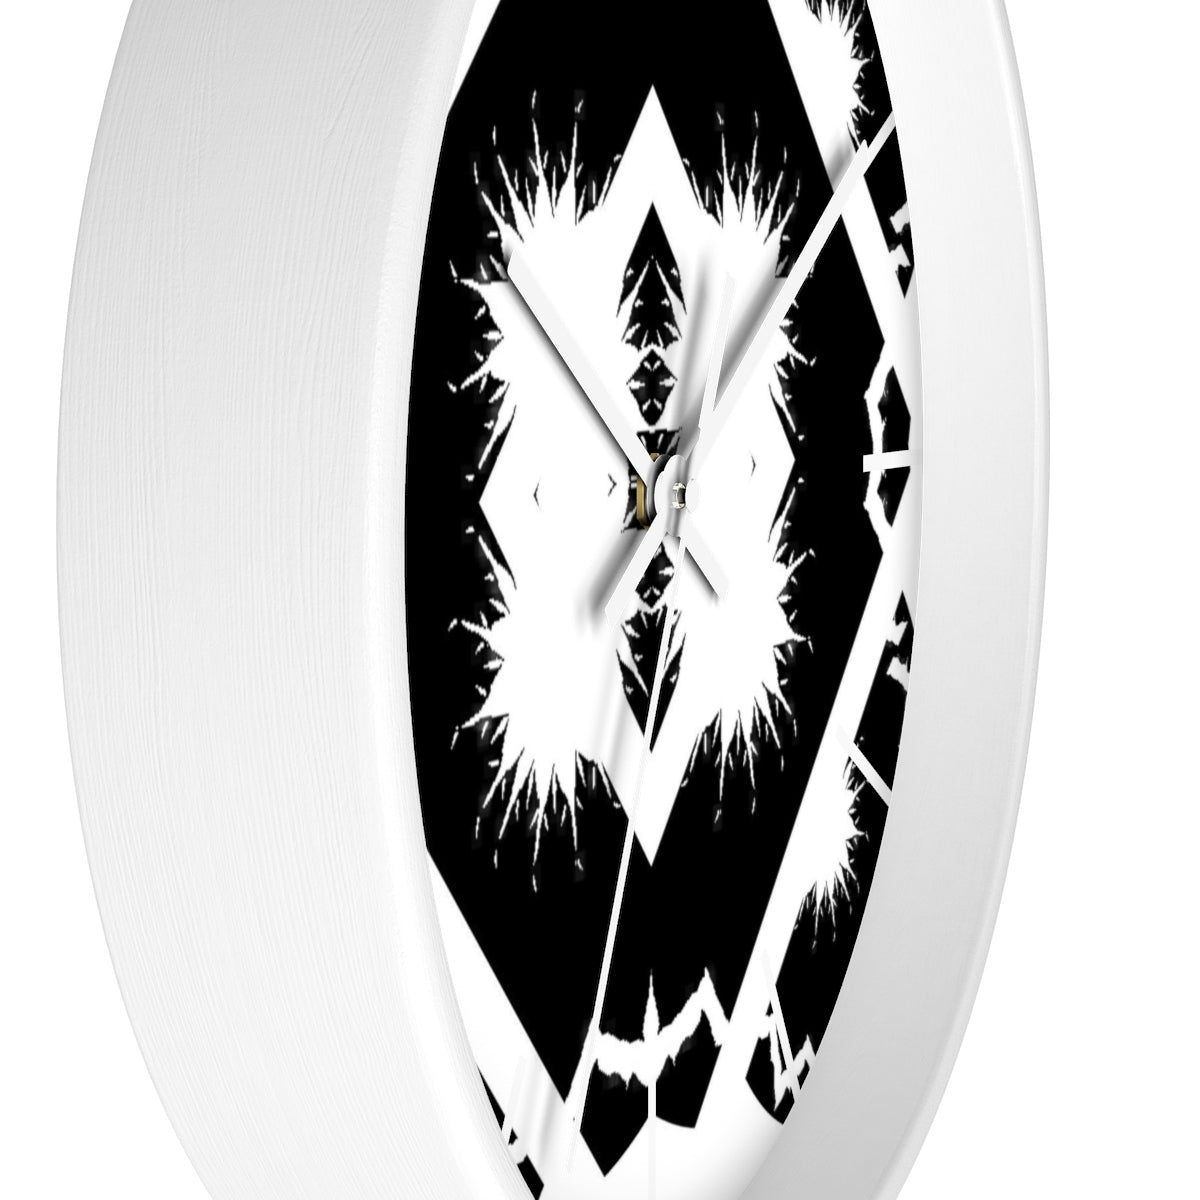 Smithereens - Wall clock - Designed by @remlor - Remlor Art